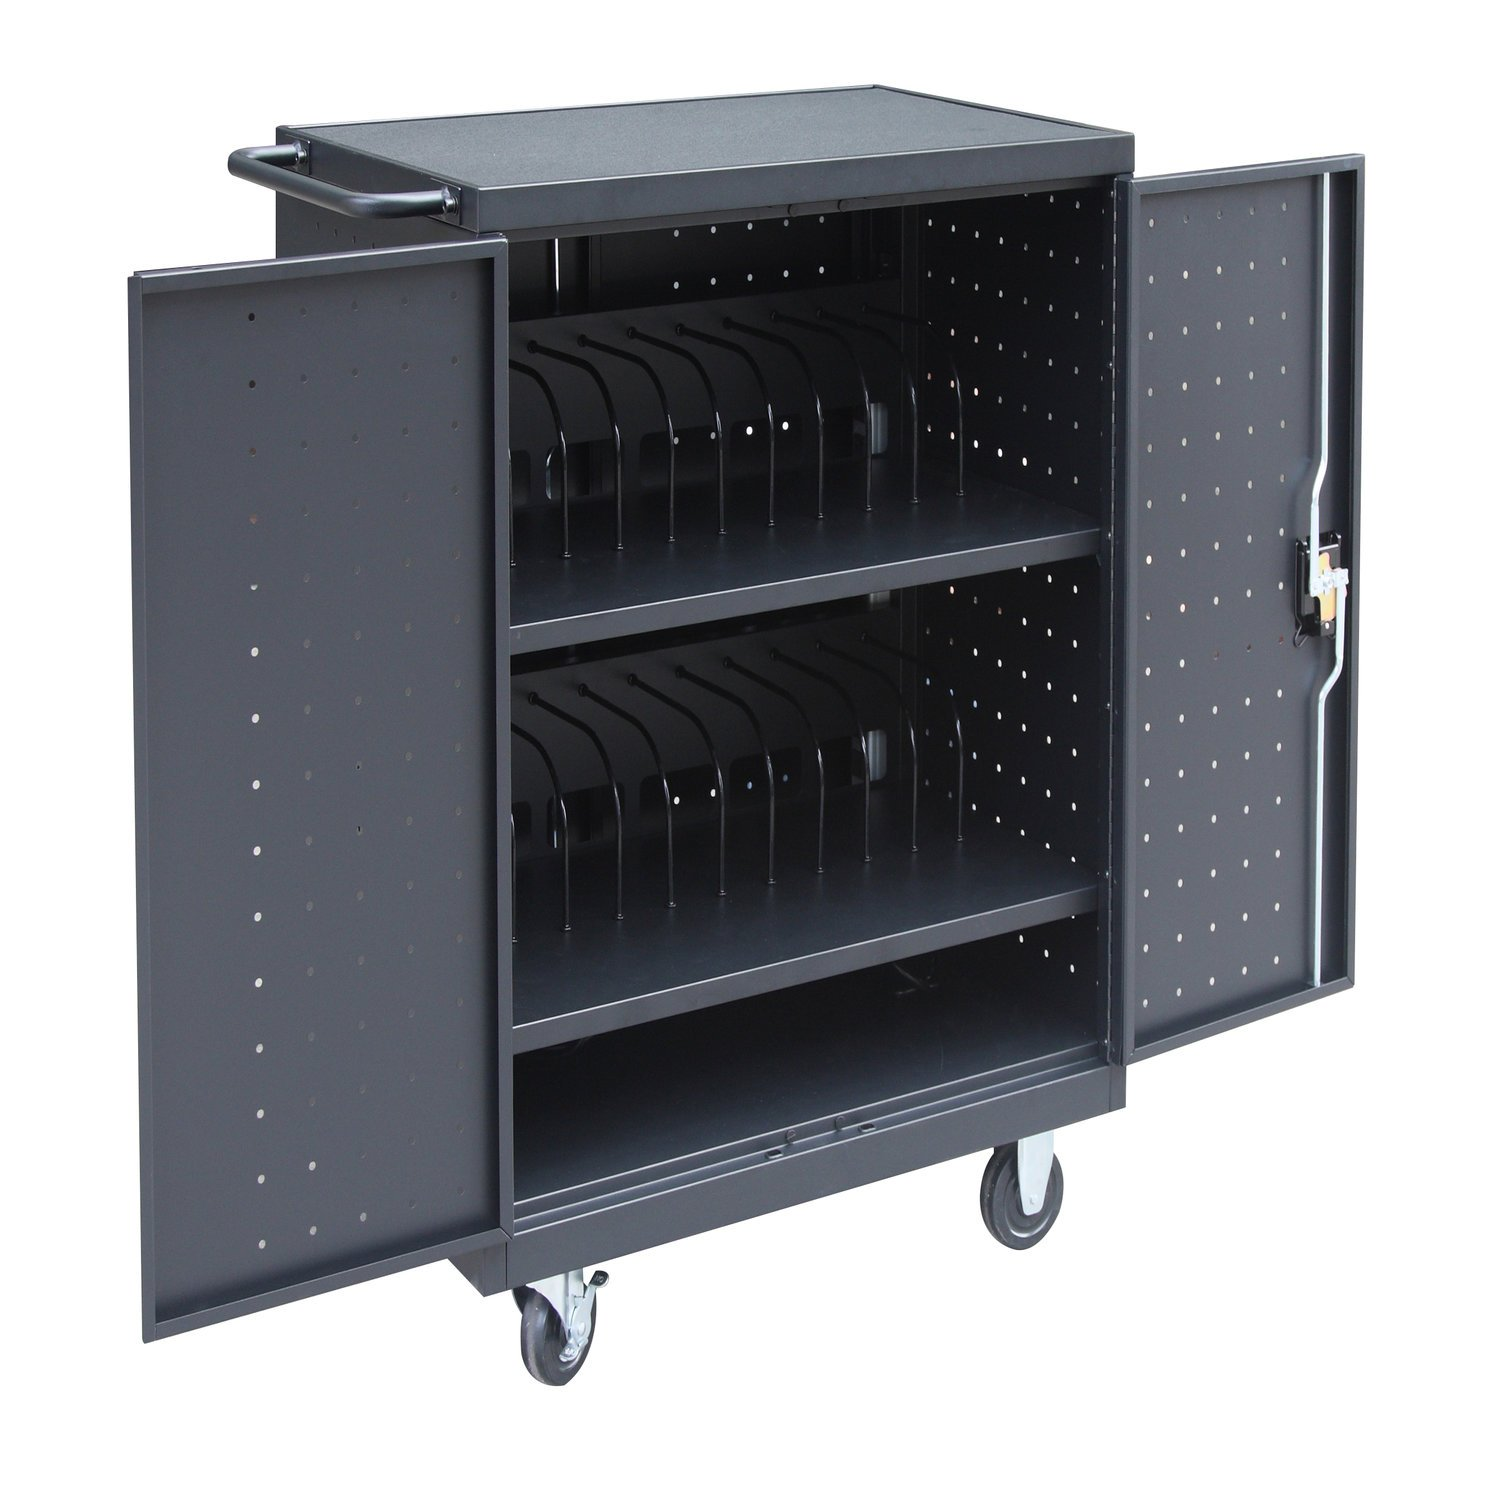 Pearington 24 bay storage and charging cart for laptops and tablets, Black